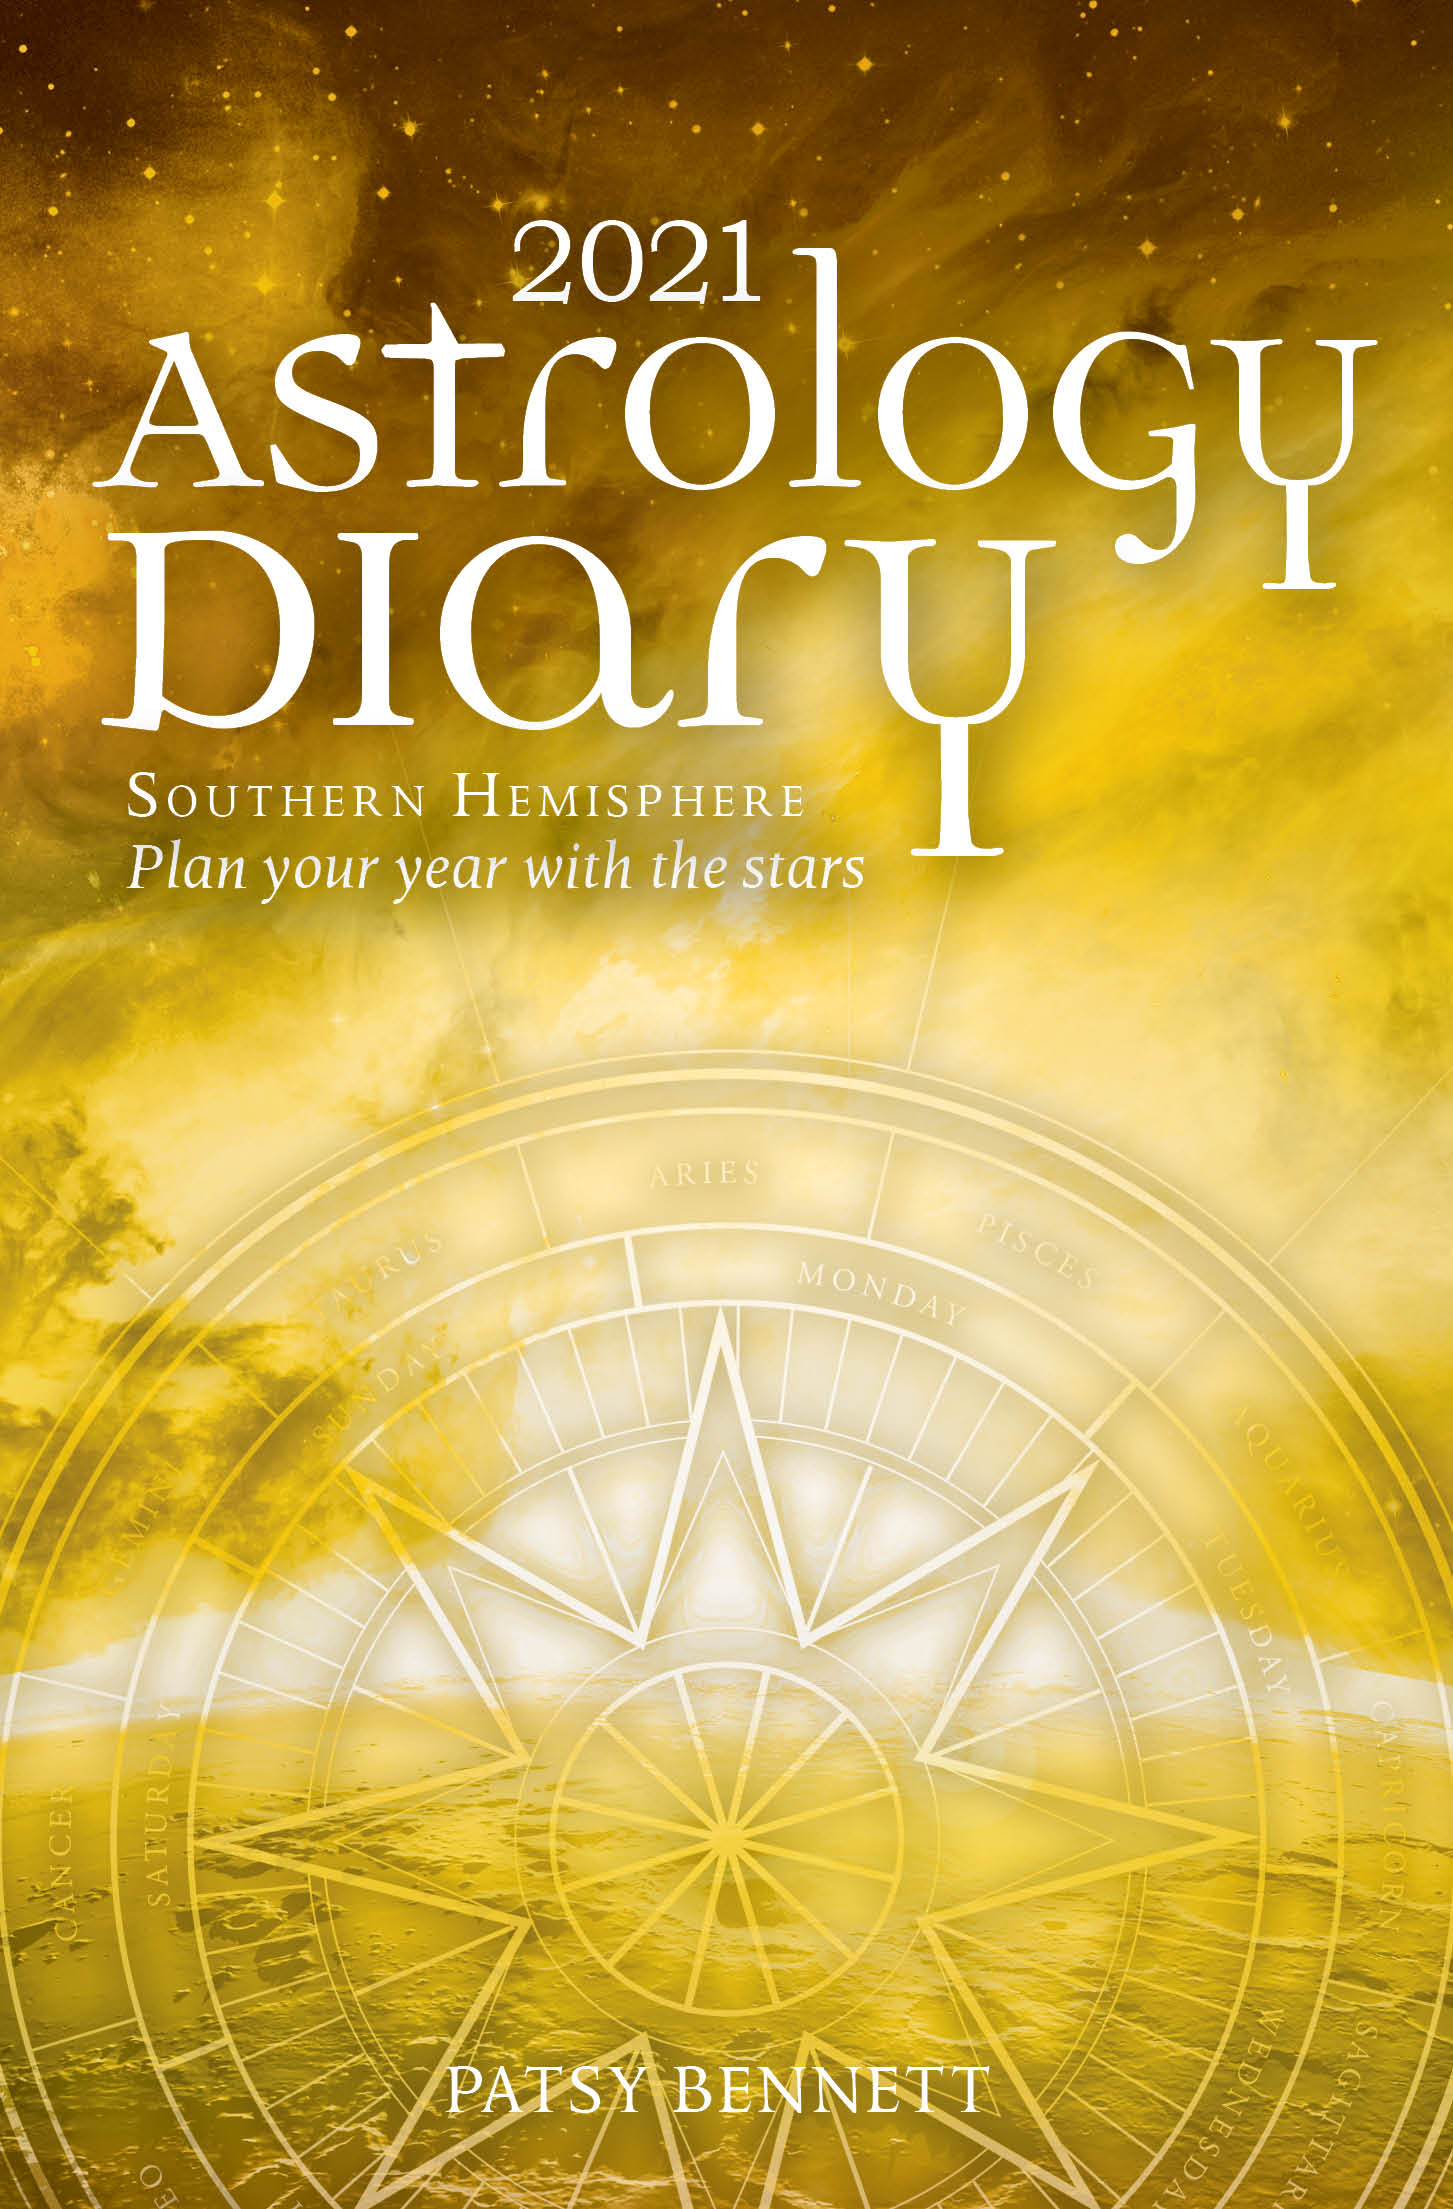 2021 Astrology Diary - Southern Hemisphere